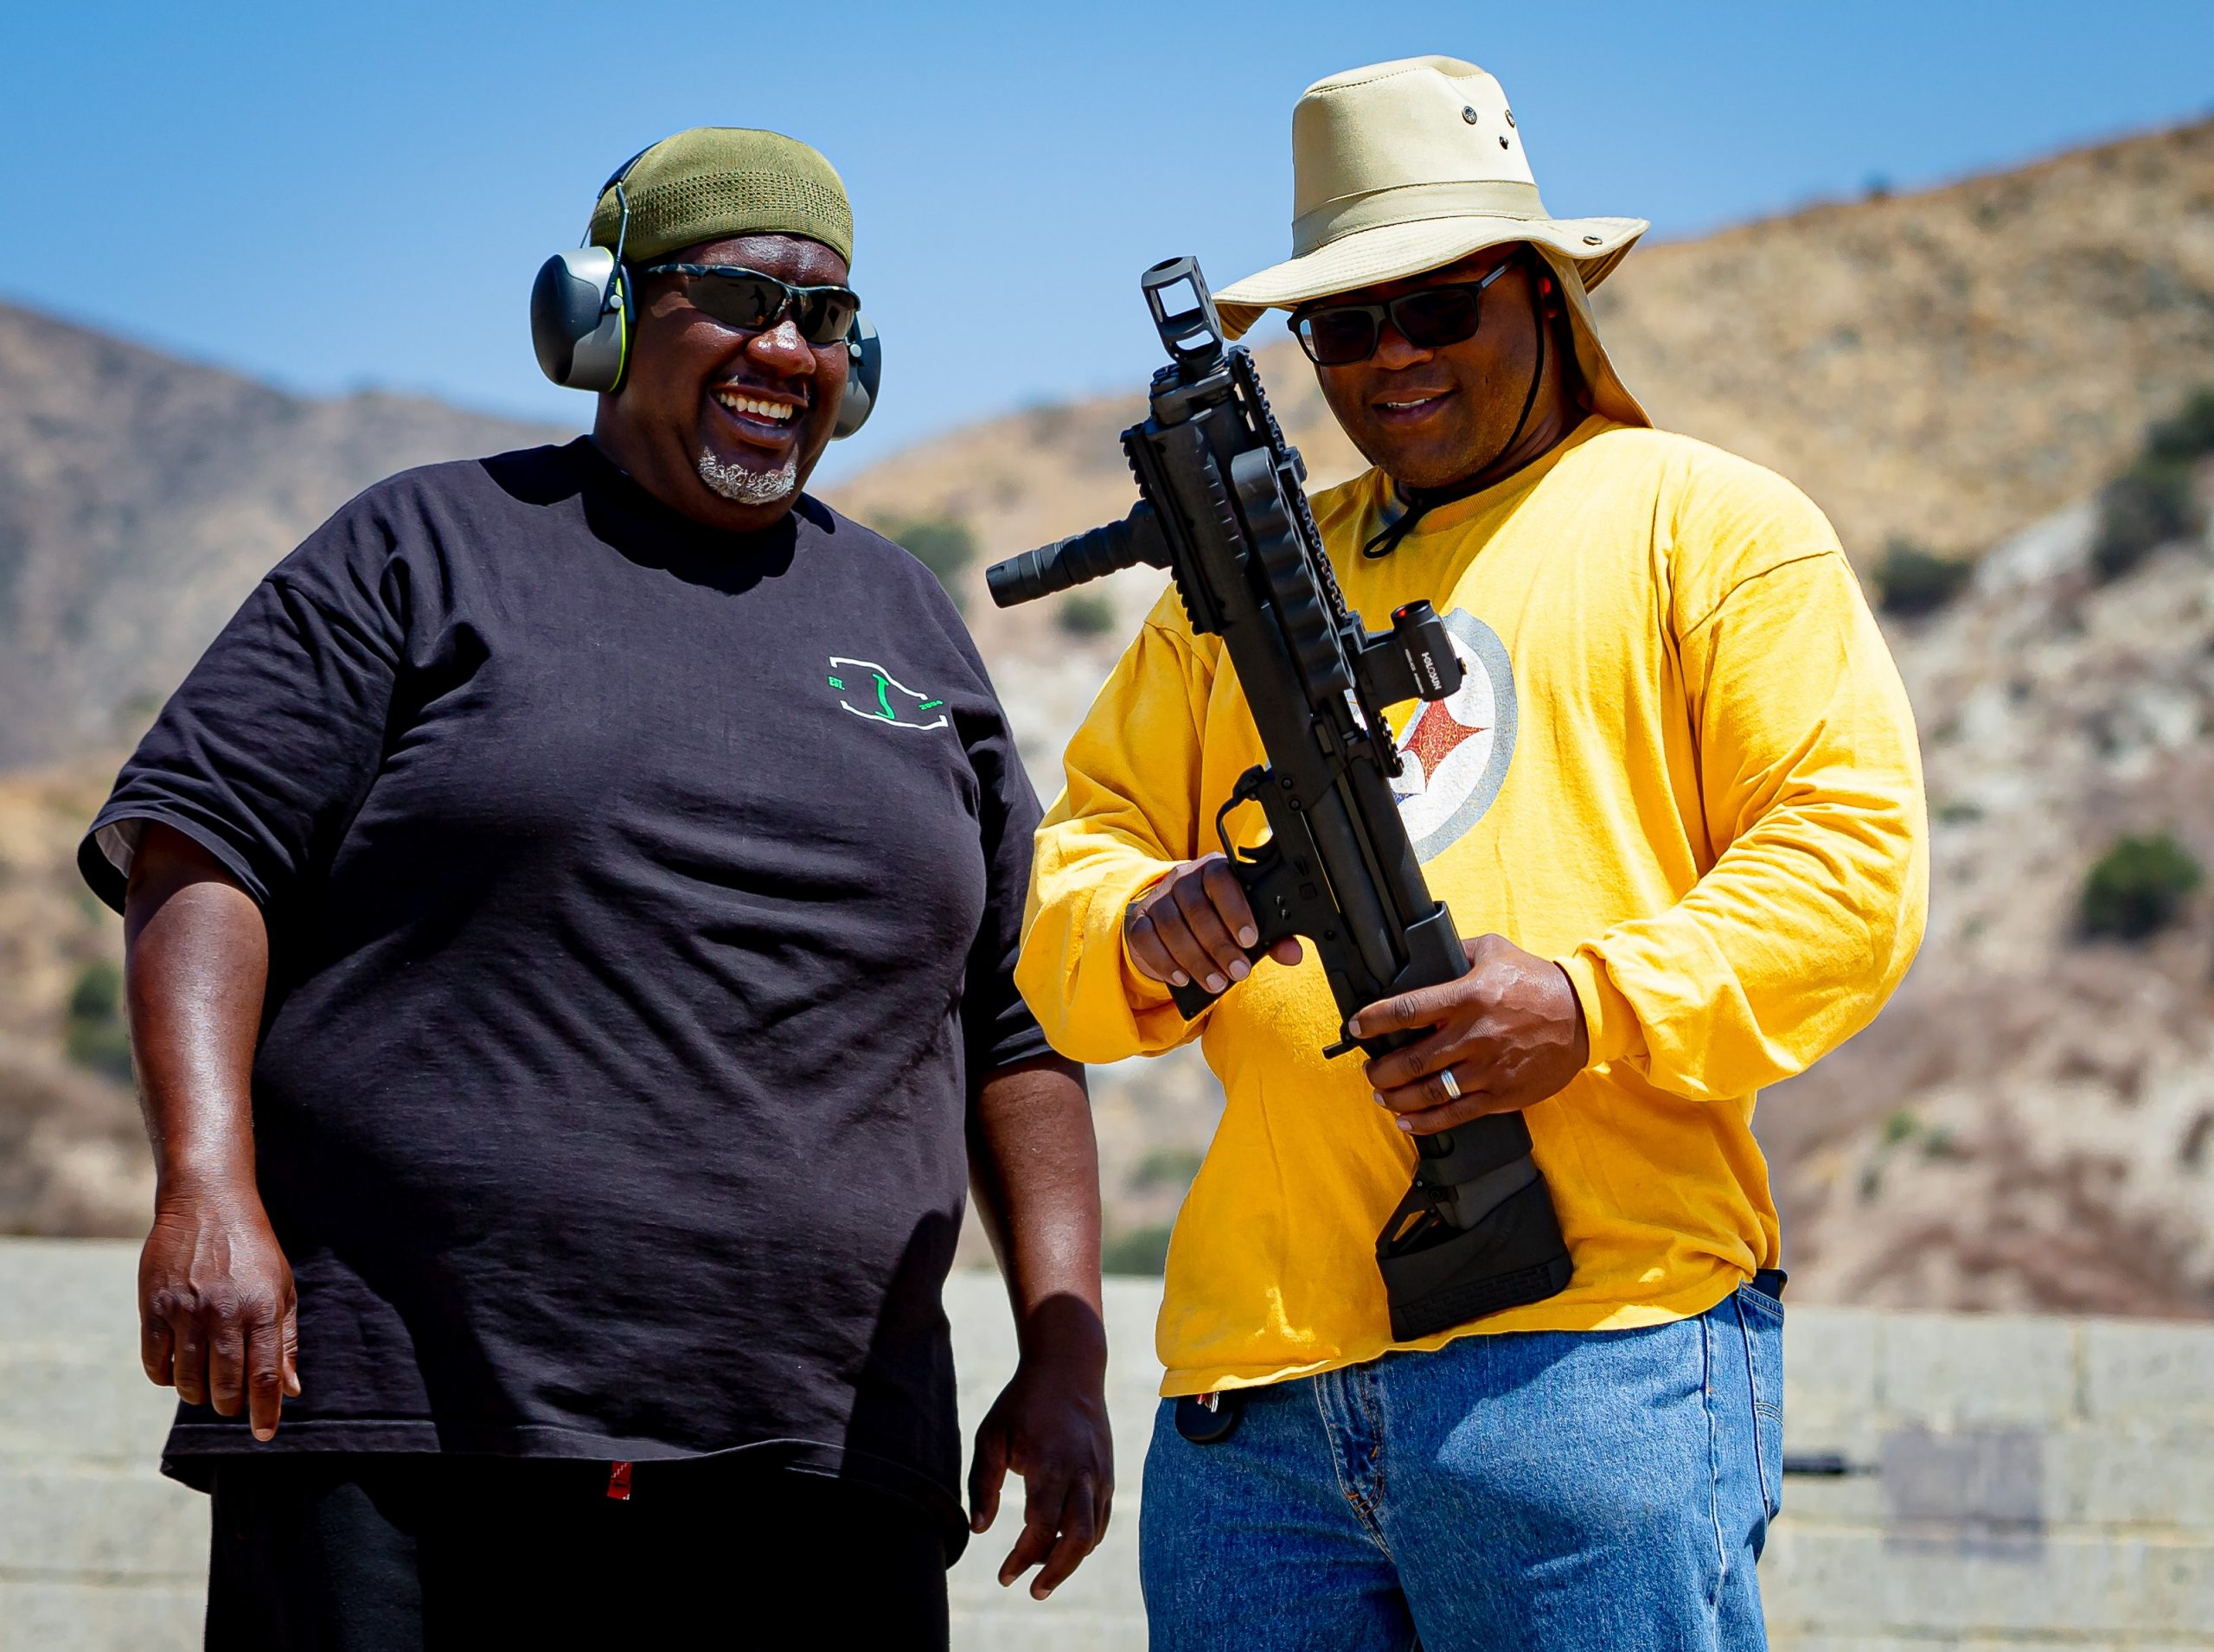 Two men are standing next to eachother looking at a Short shotgun. The man on the right is wearing hearing protection and is wearing a black shortsleeve shrit and the man on the right has a large brim green hat and a longsleeve yellow shirt.